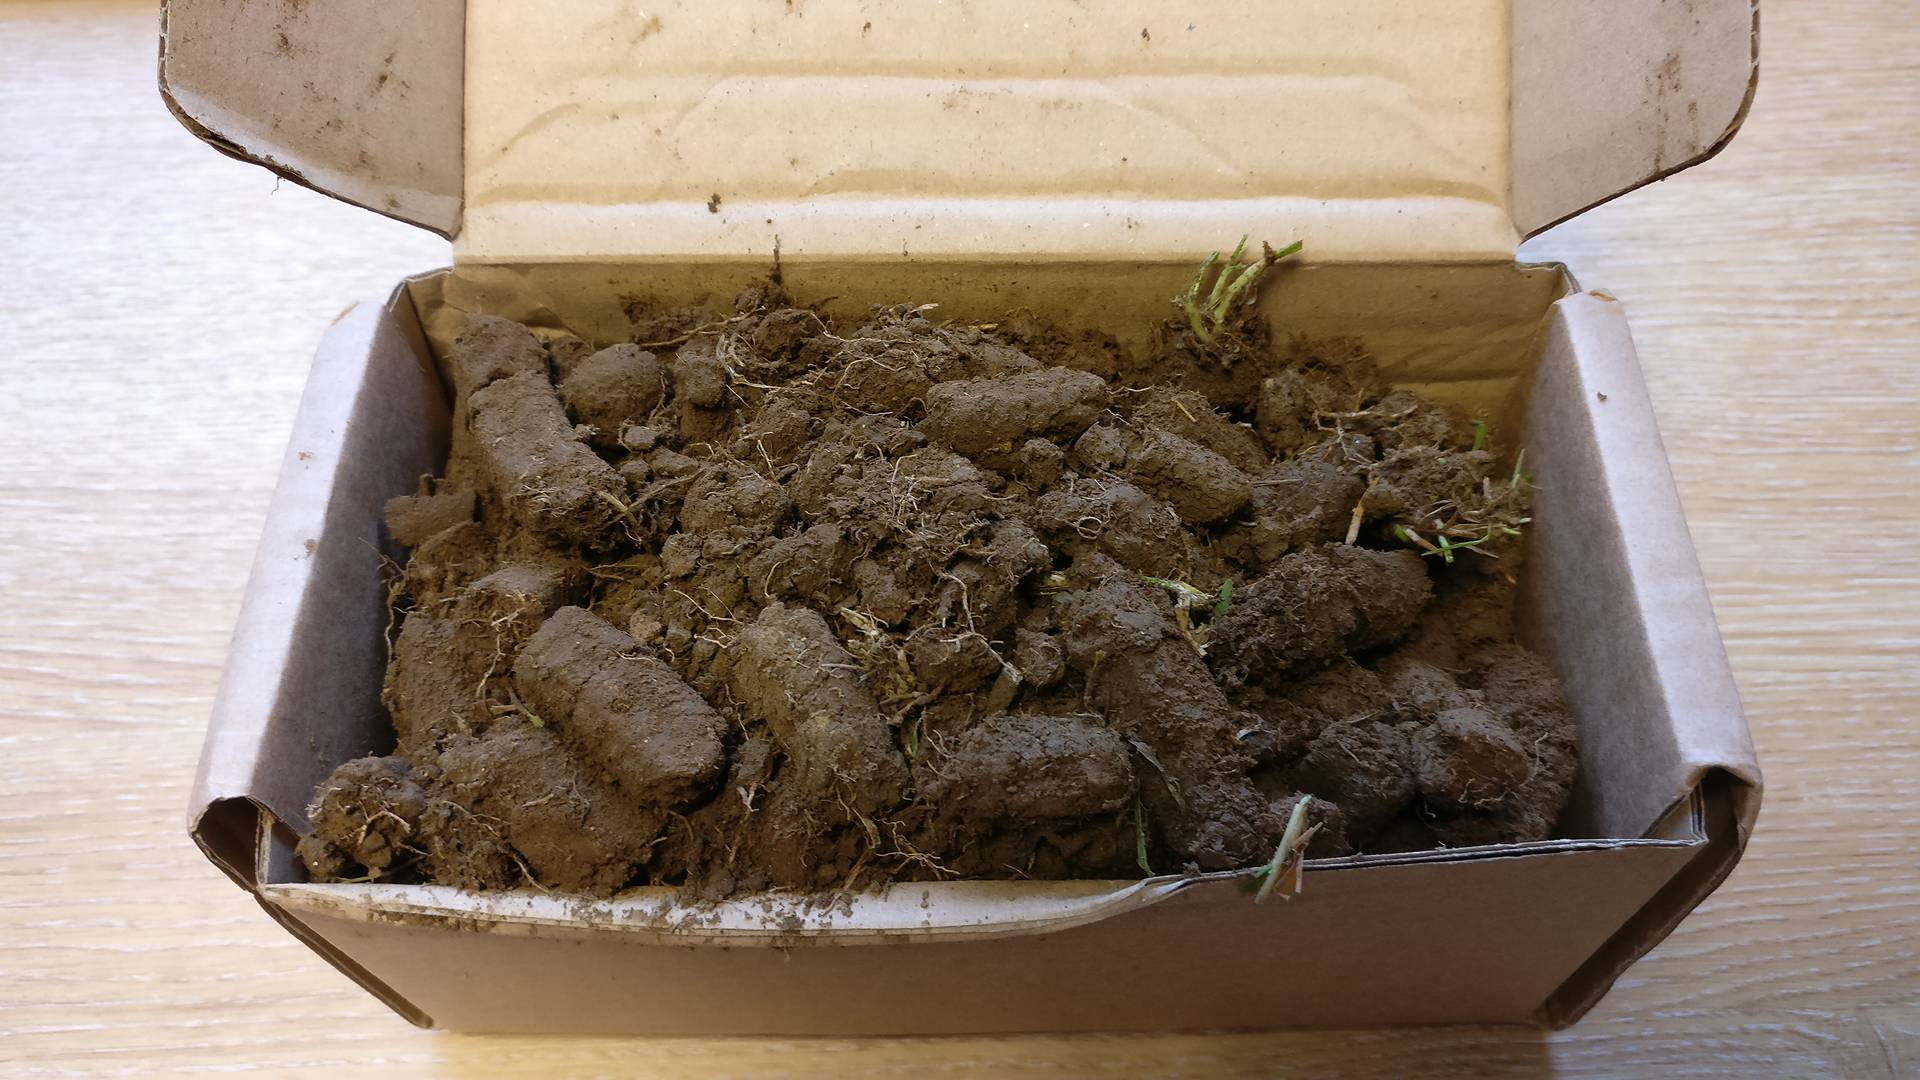 Example of Full Soil Sample